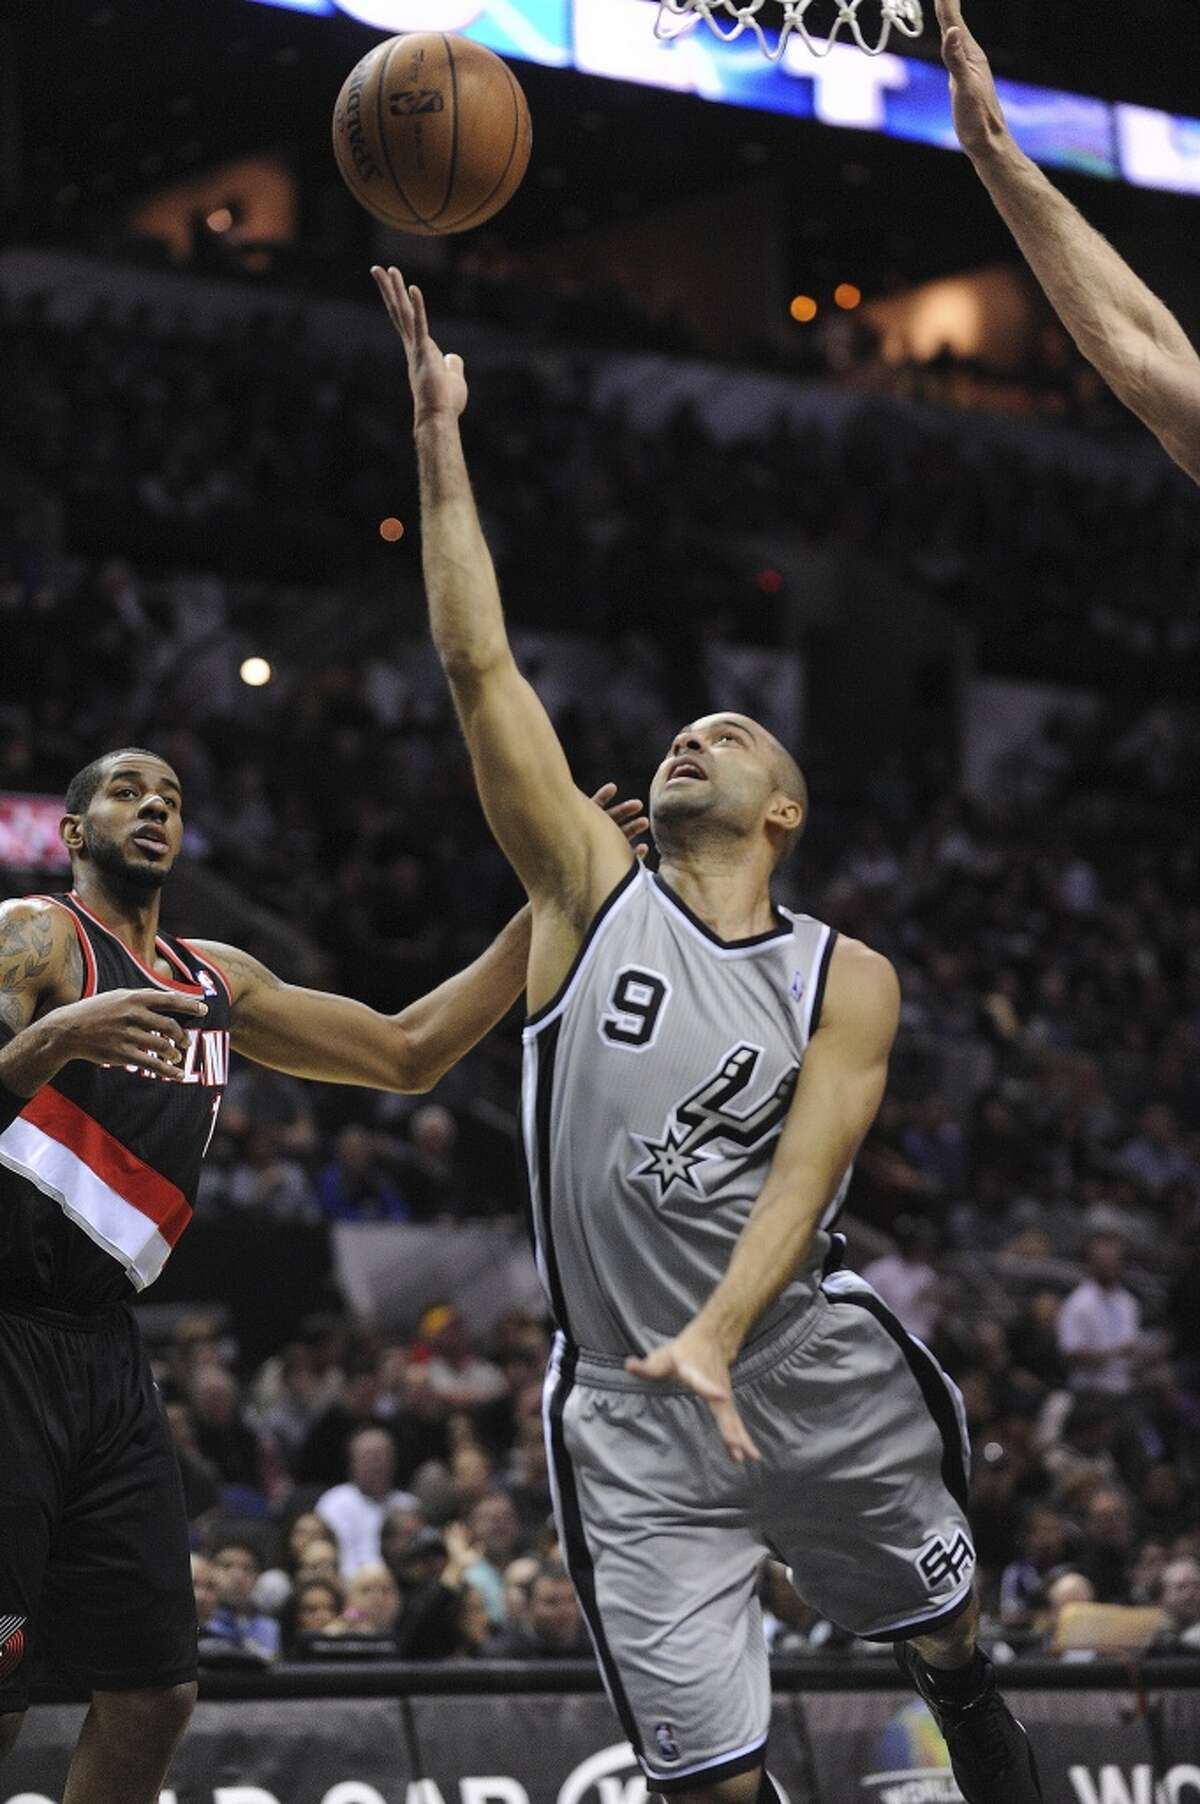 Tony Parker (9) of the San Antonio Spurs lays up the ball during NBA action against the Portland Trailblazers in the AT&T Center on Friday, Jan. 17, 2014.